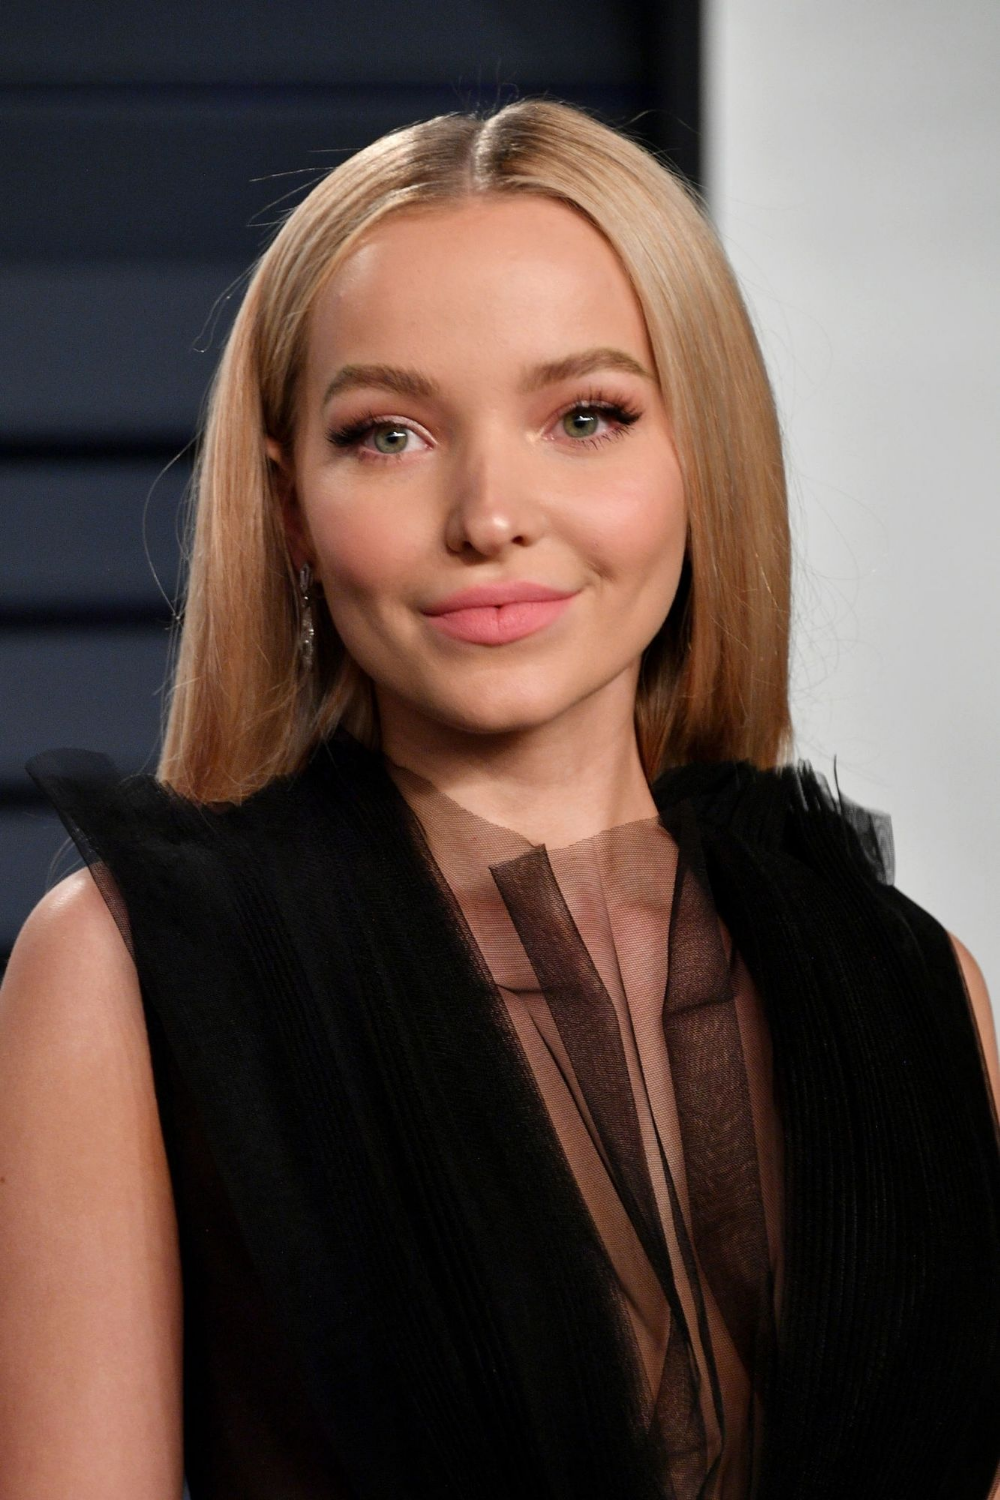 Vanity Fair Oscar Party Feb 24 2019 015 Dove Cameron Online Photo Gallery Thousands Of Im In 2020 Light Blonde Light Golden Brown Hair Golden Brown Hair Color